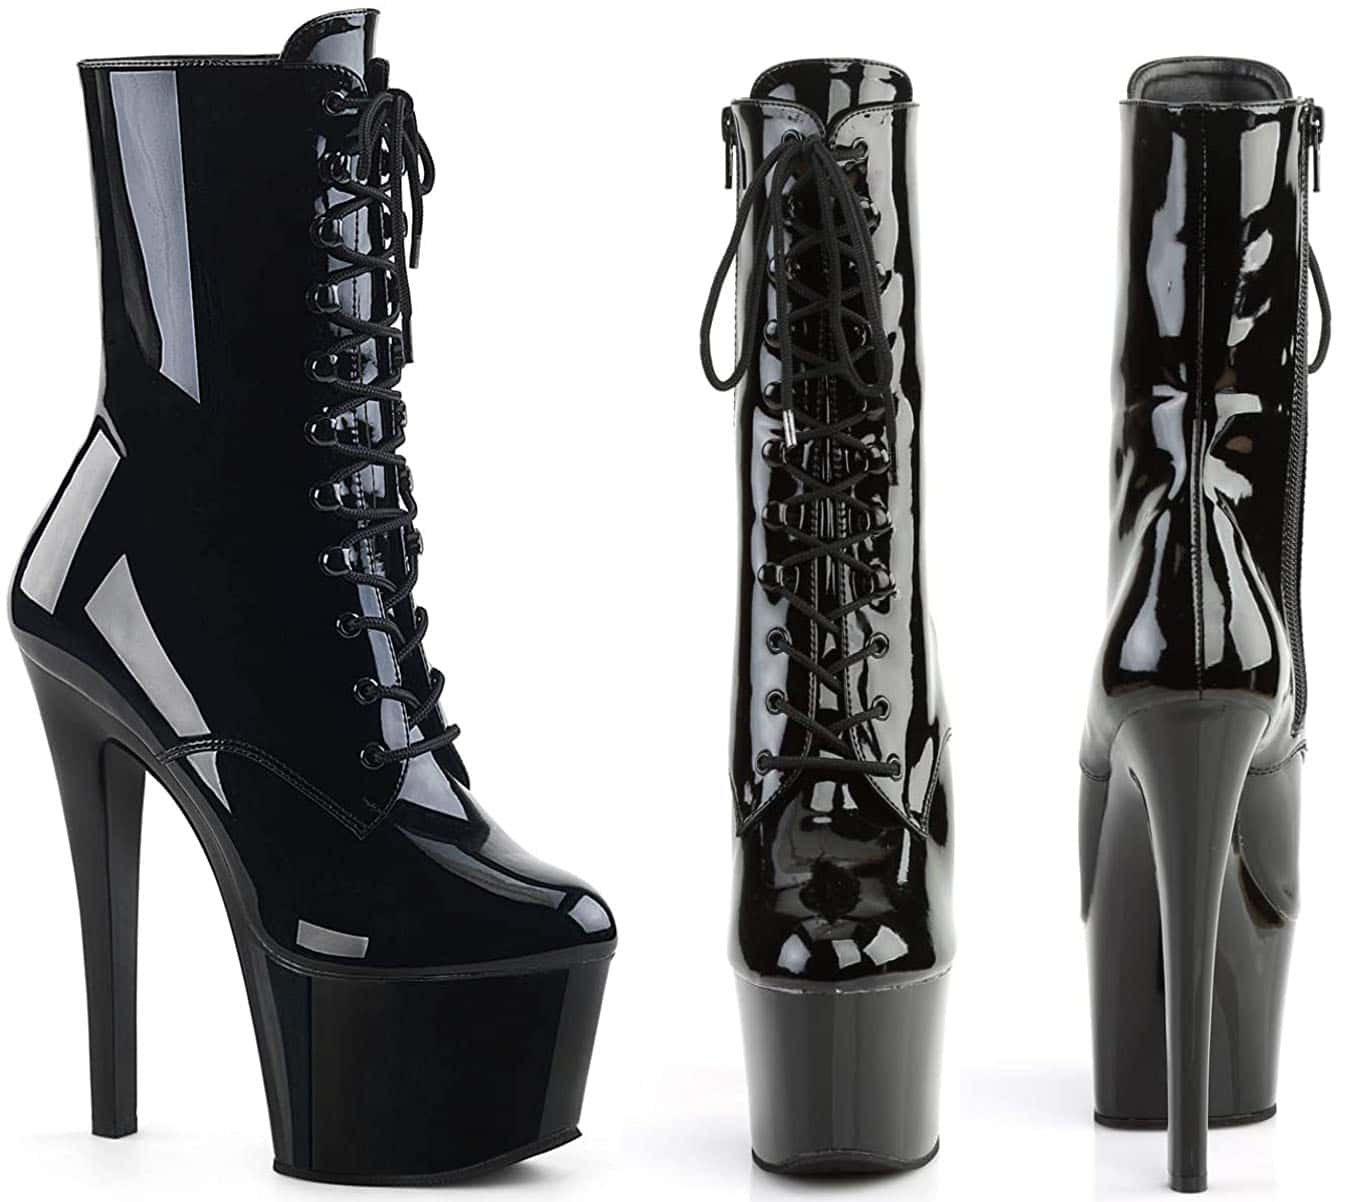 The Pleaser Xtreme 1020 offers an extraordinary lift with its 8-inch spike heels and 4-inch platforms